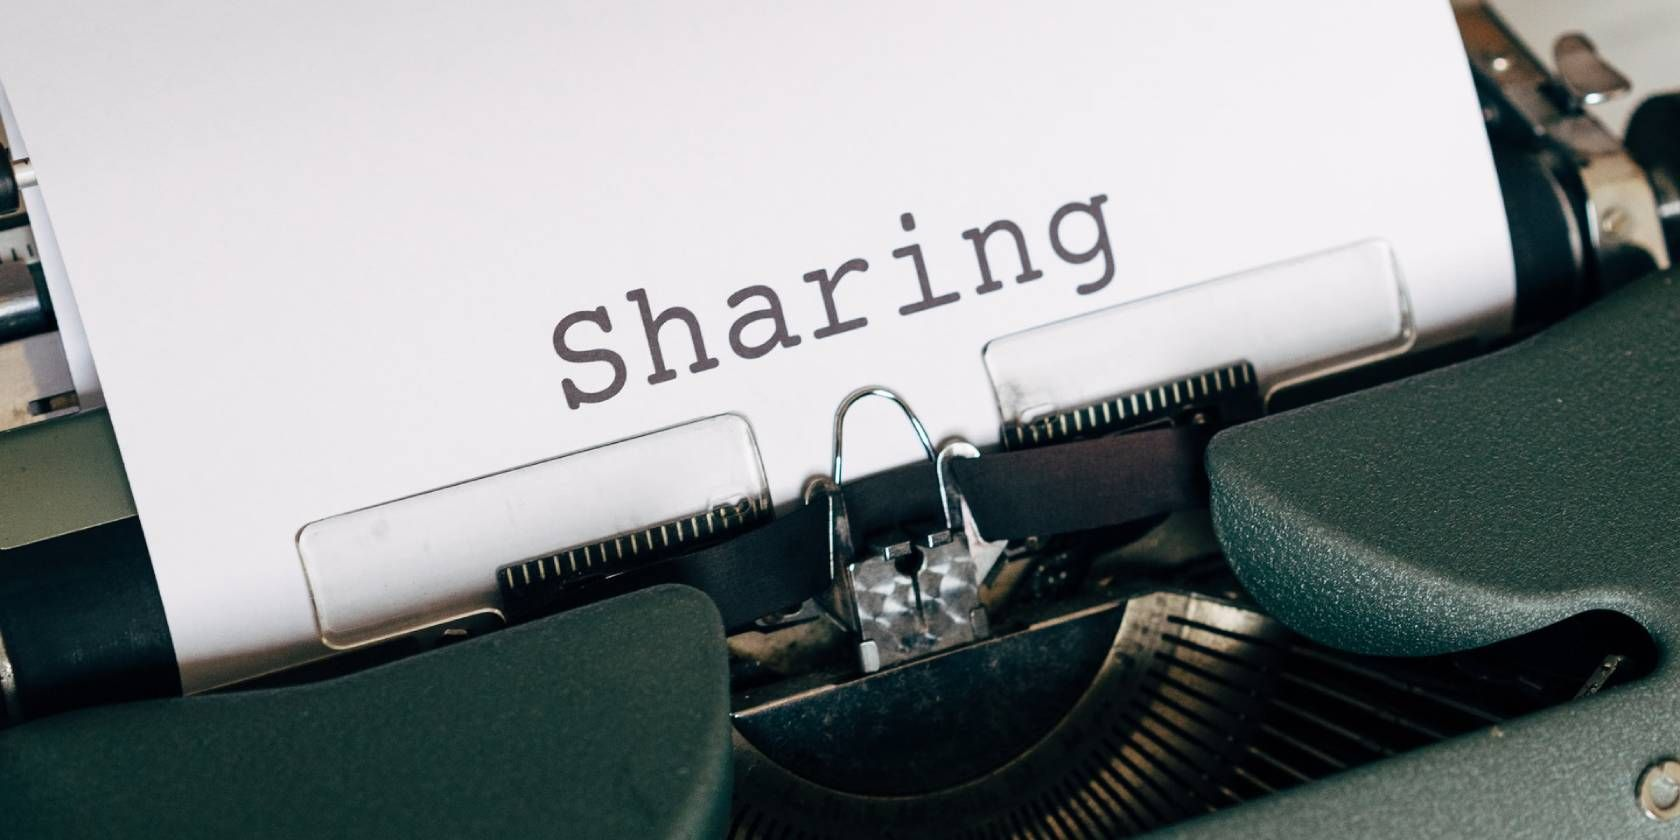 How to Upload and Share Files From the Terminal Using Transfer.sh